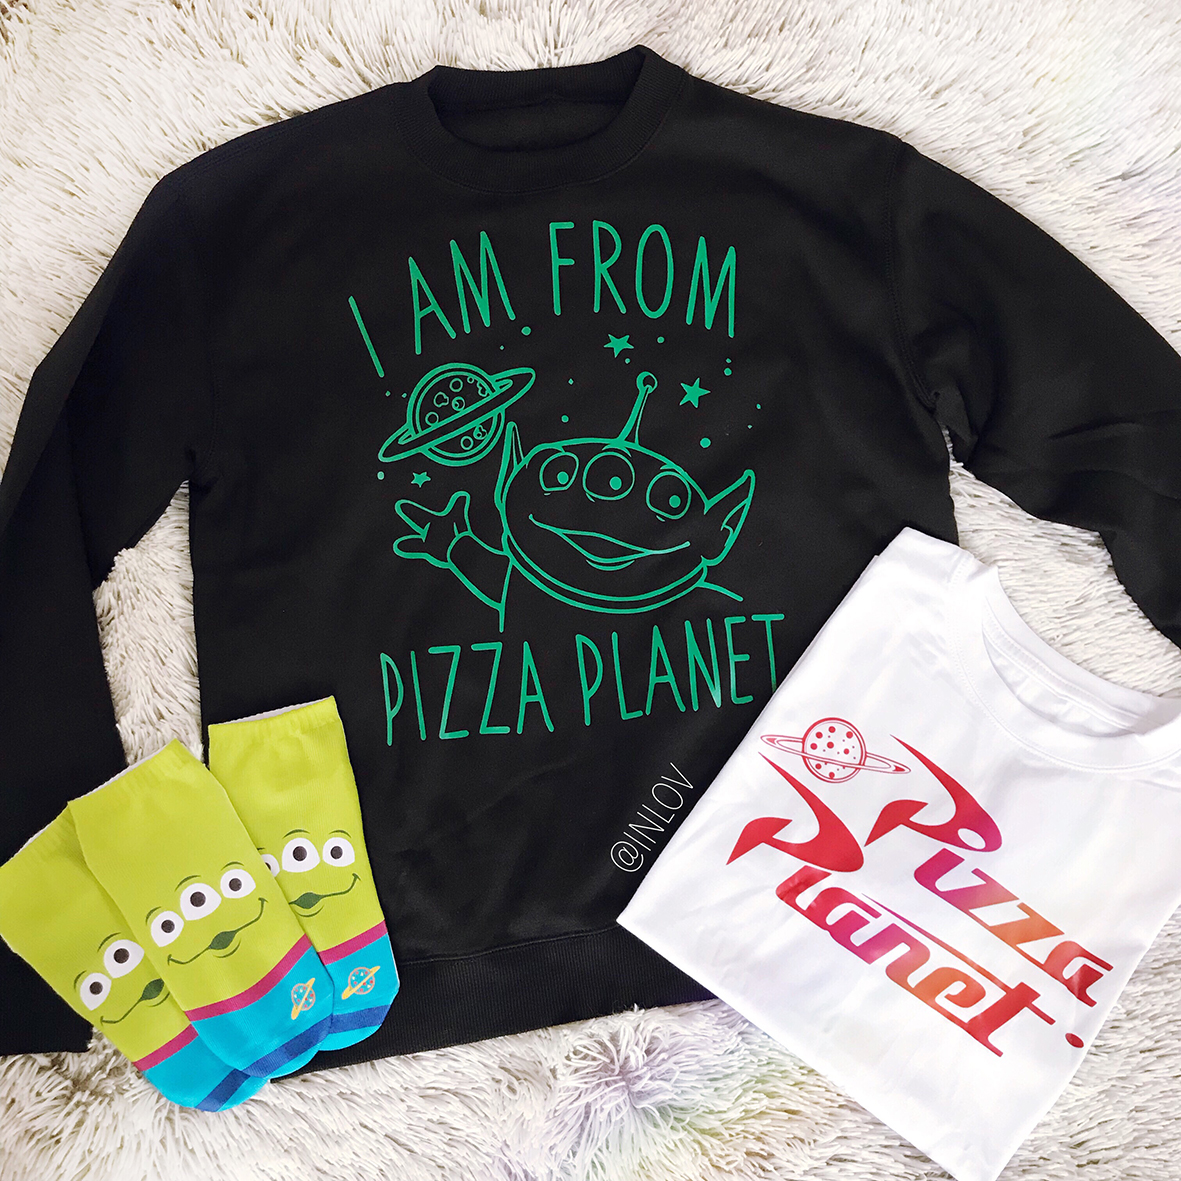 PULLOVER PIZZA PLANET